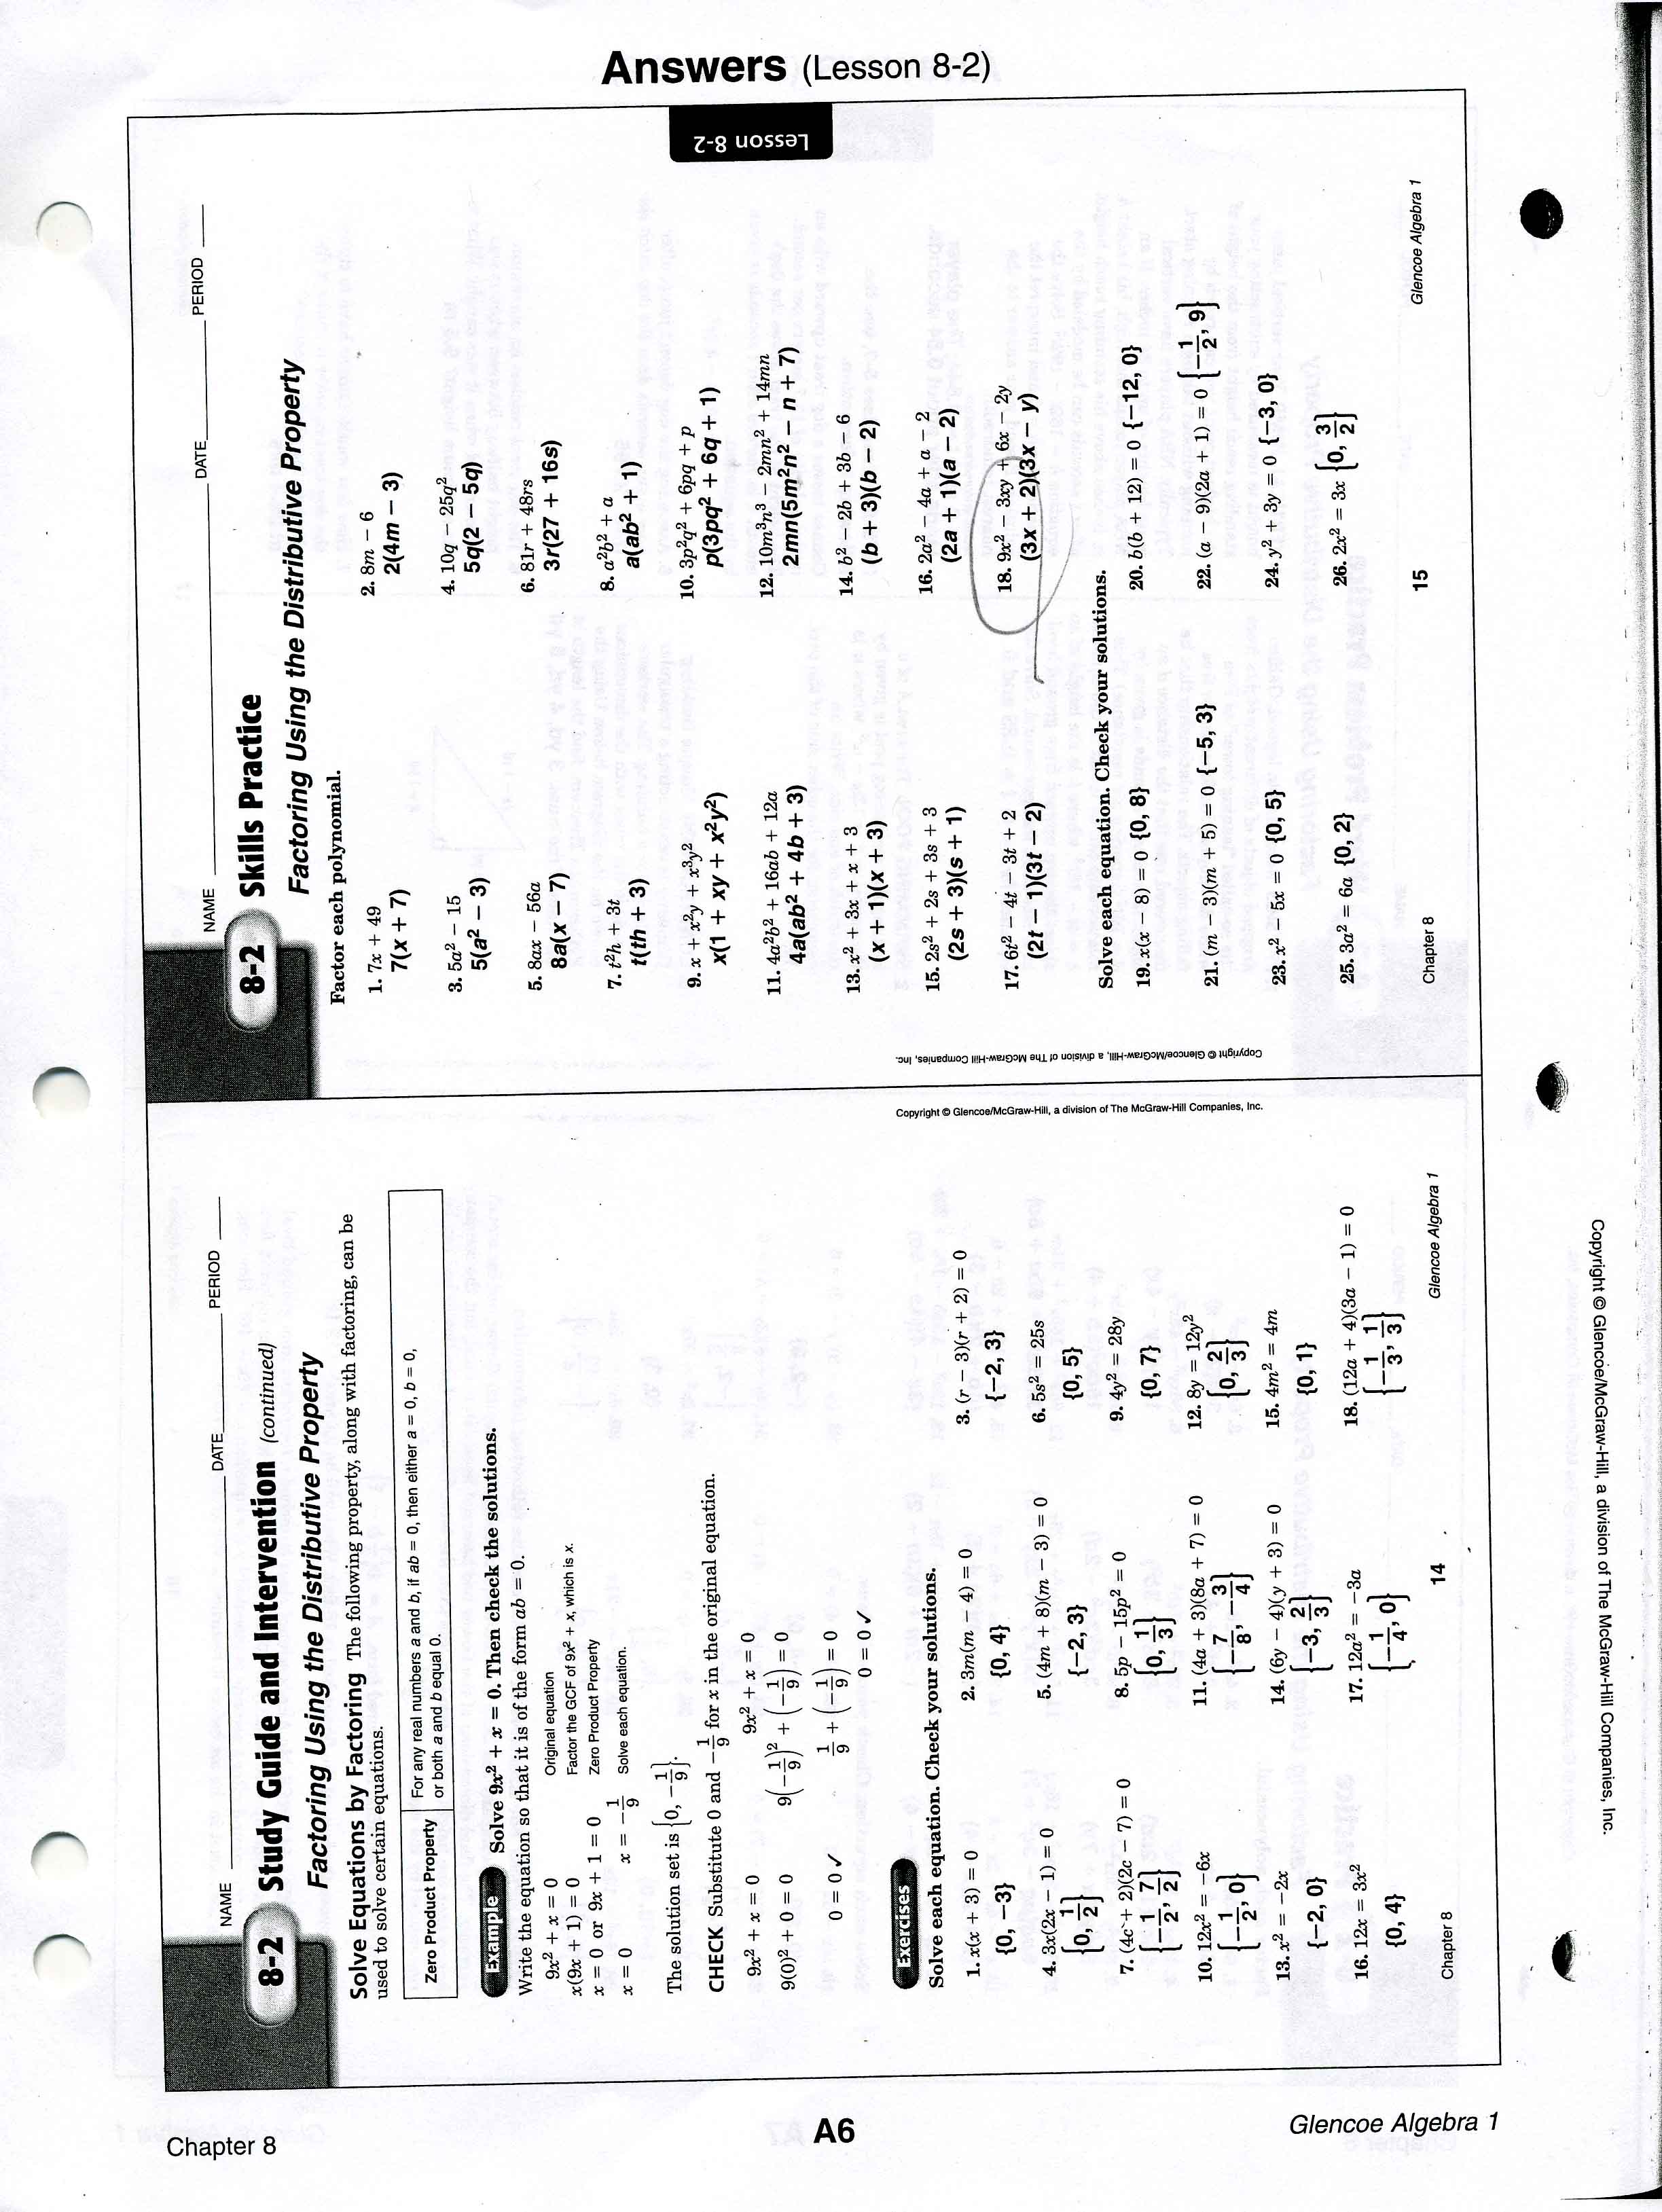 Worksheets Algebra 1 Worksheet Answers mrscabral algebra 1 worksheet answers answers